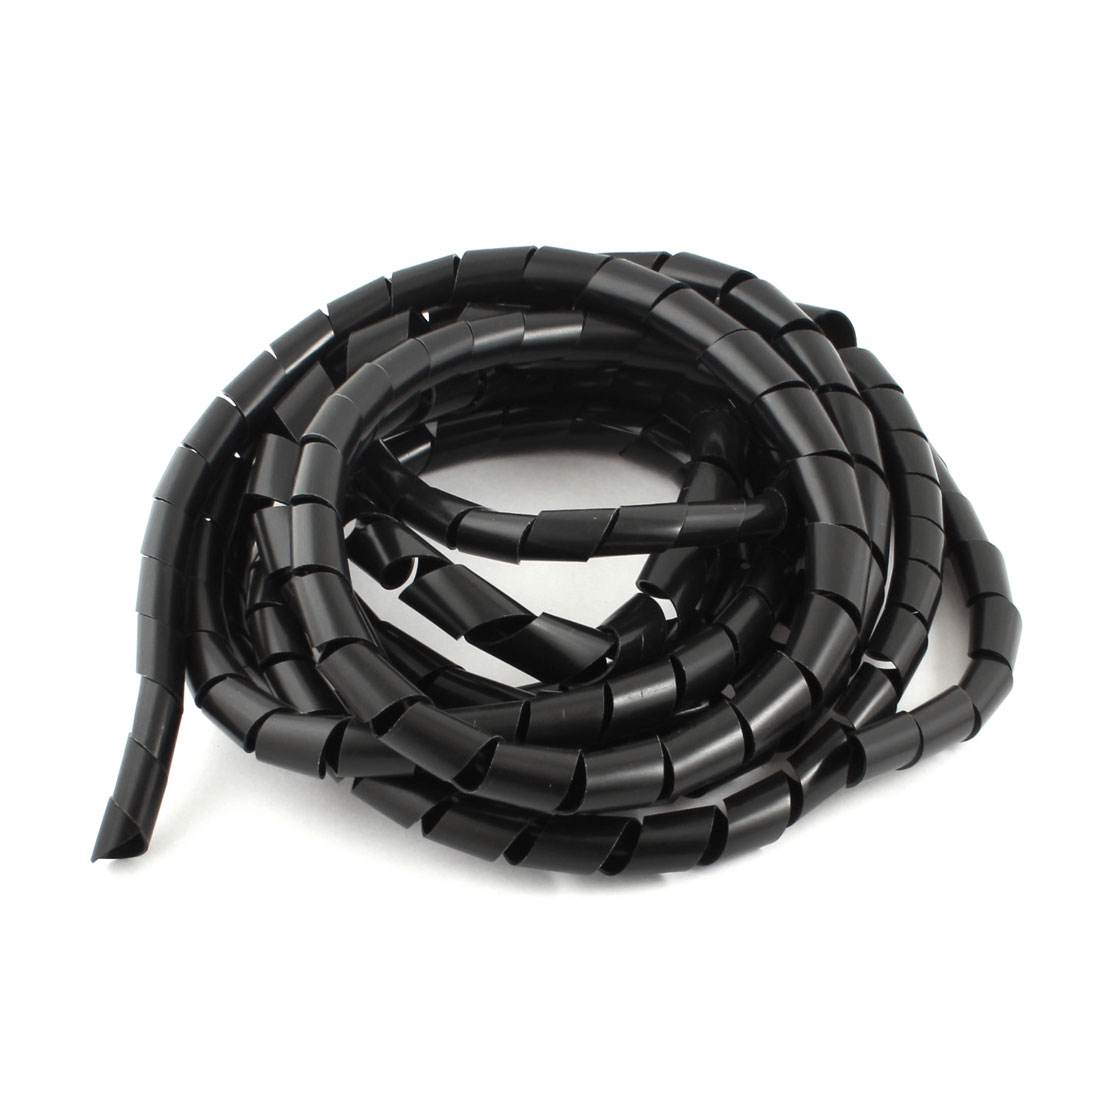 14mm Black Spiral Wrap Sleeving Band Tube Computer Manager Cable 5M Length